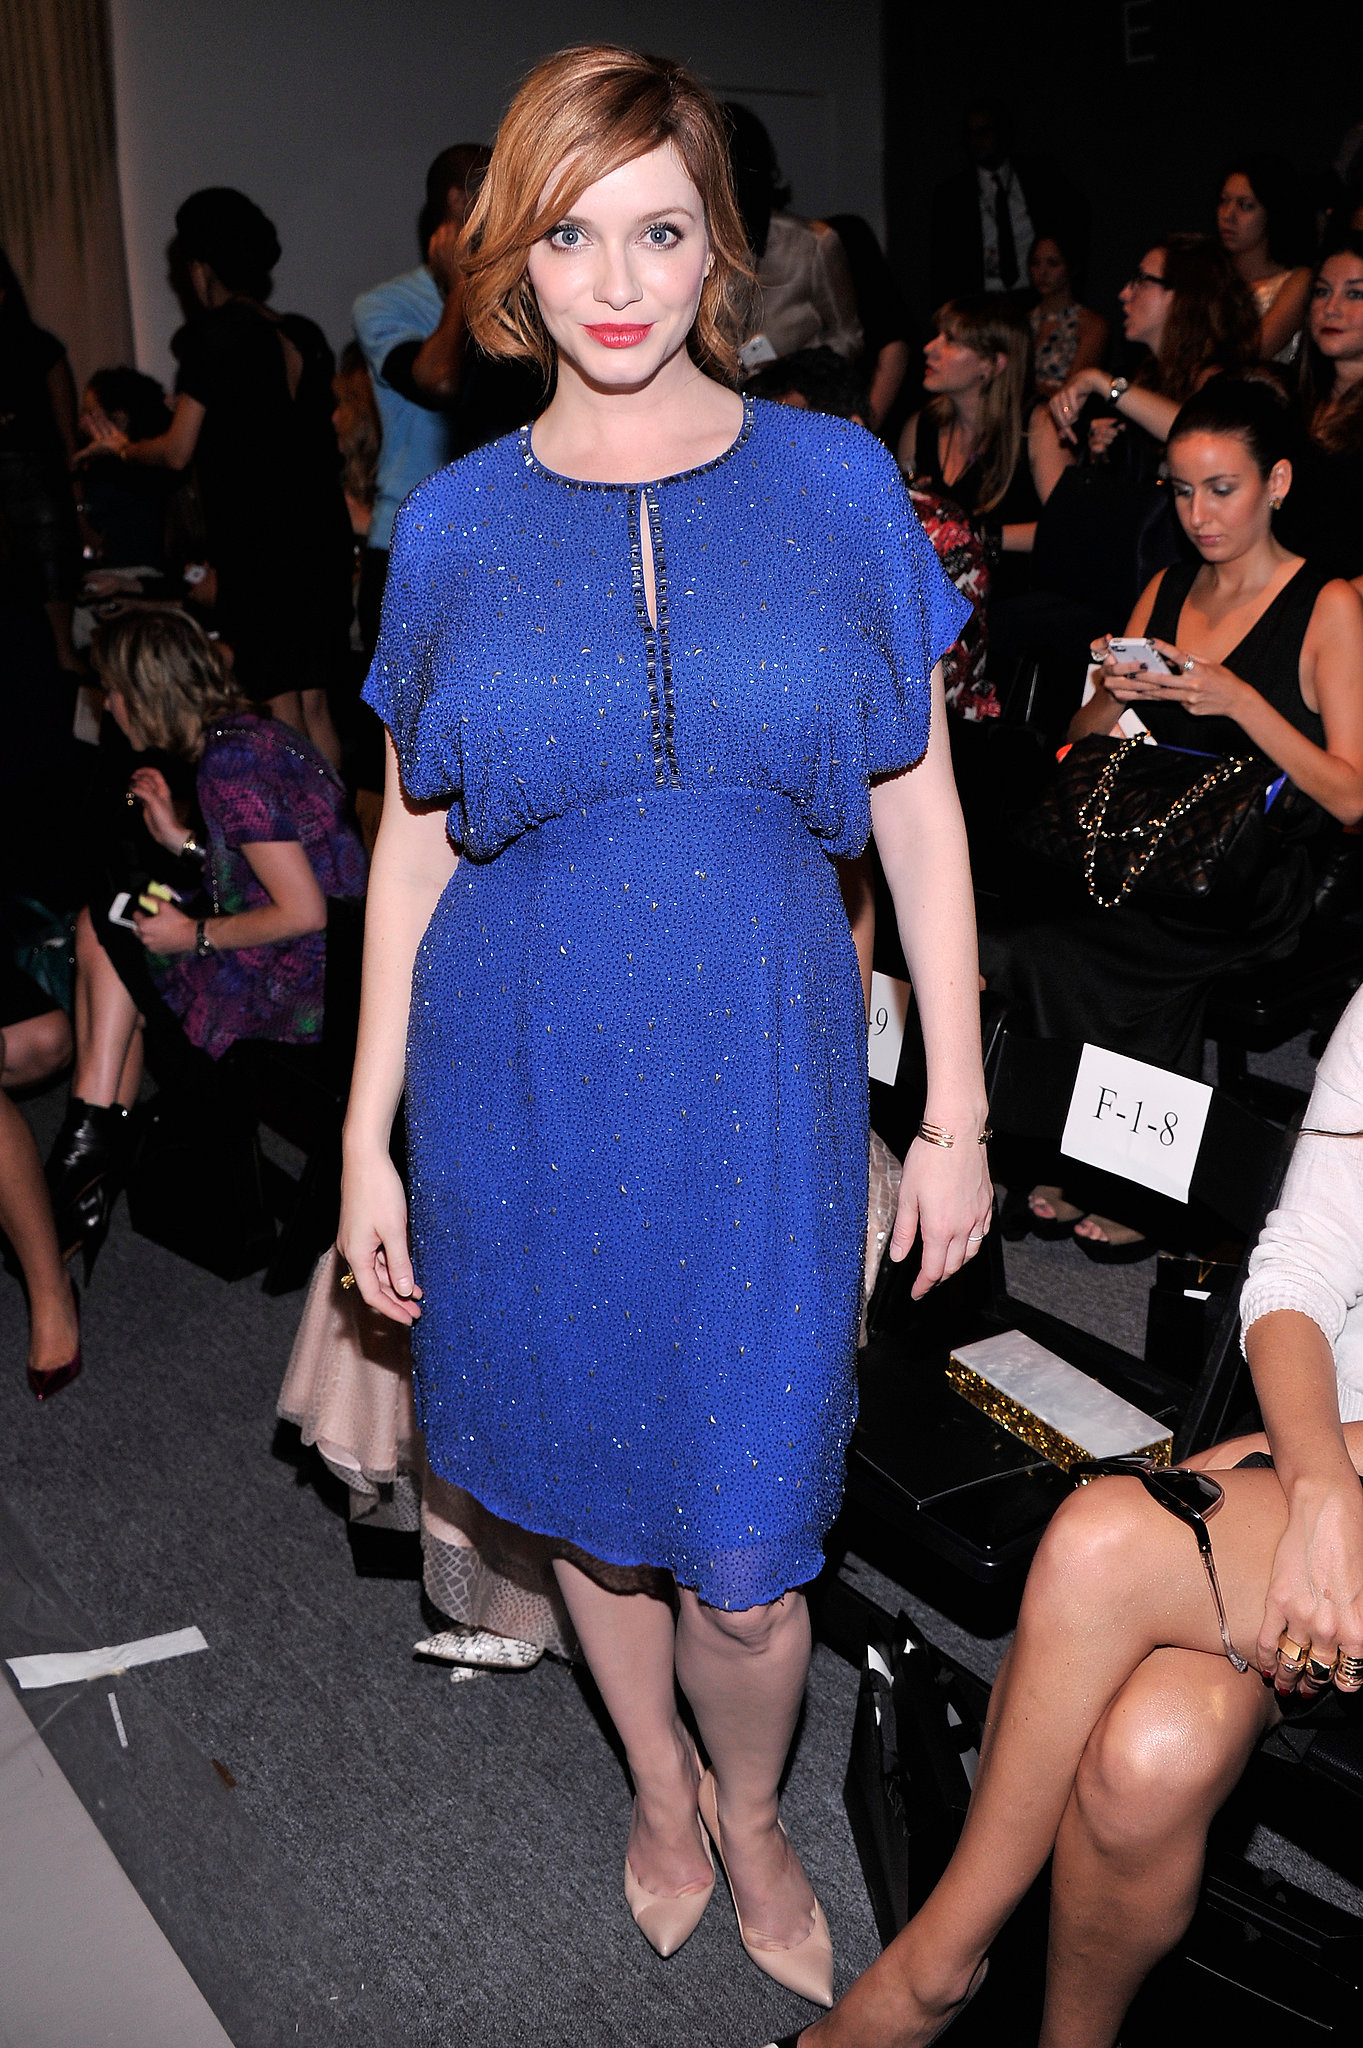 Christina Hendricks dazzled in an electric blue embellished dress at the Jenny Packham show.